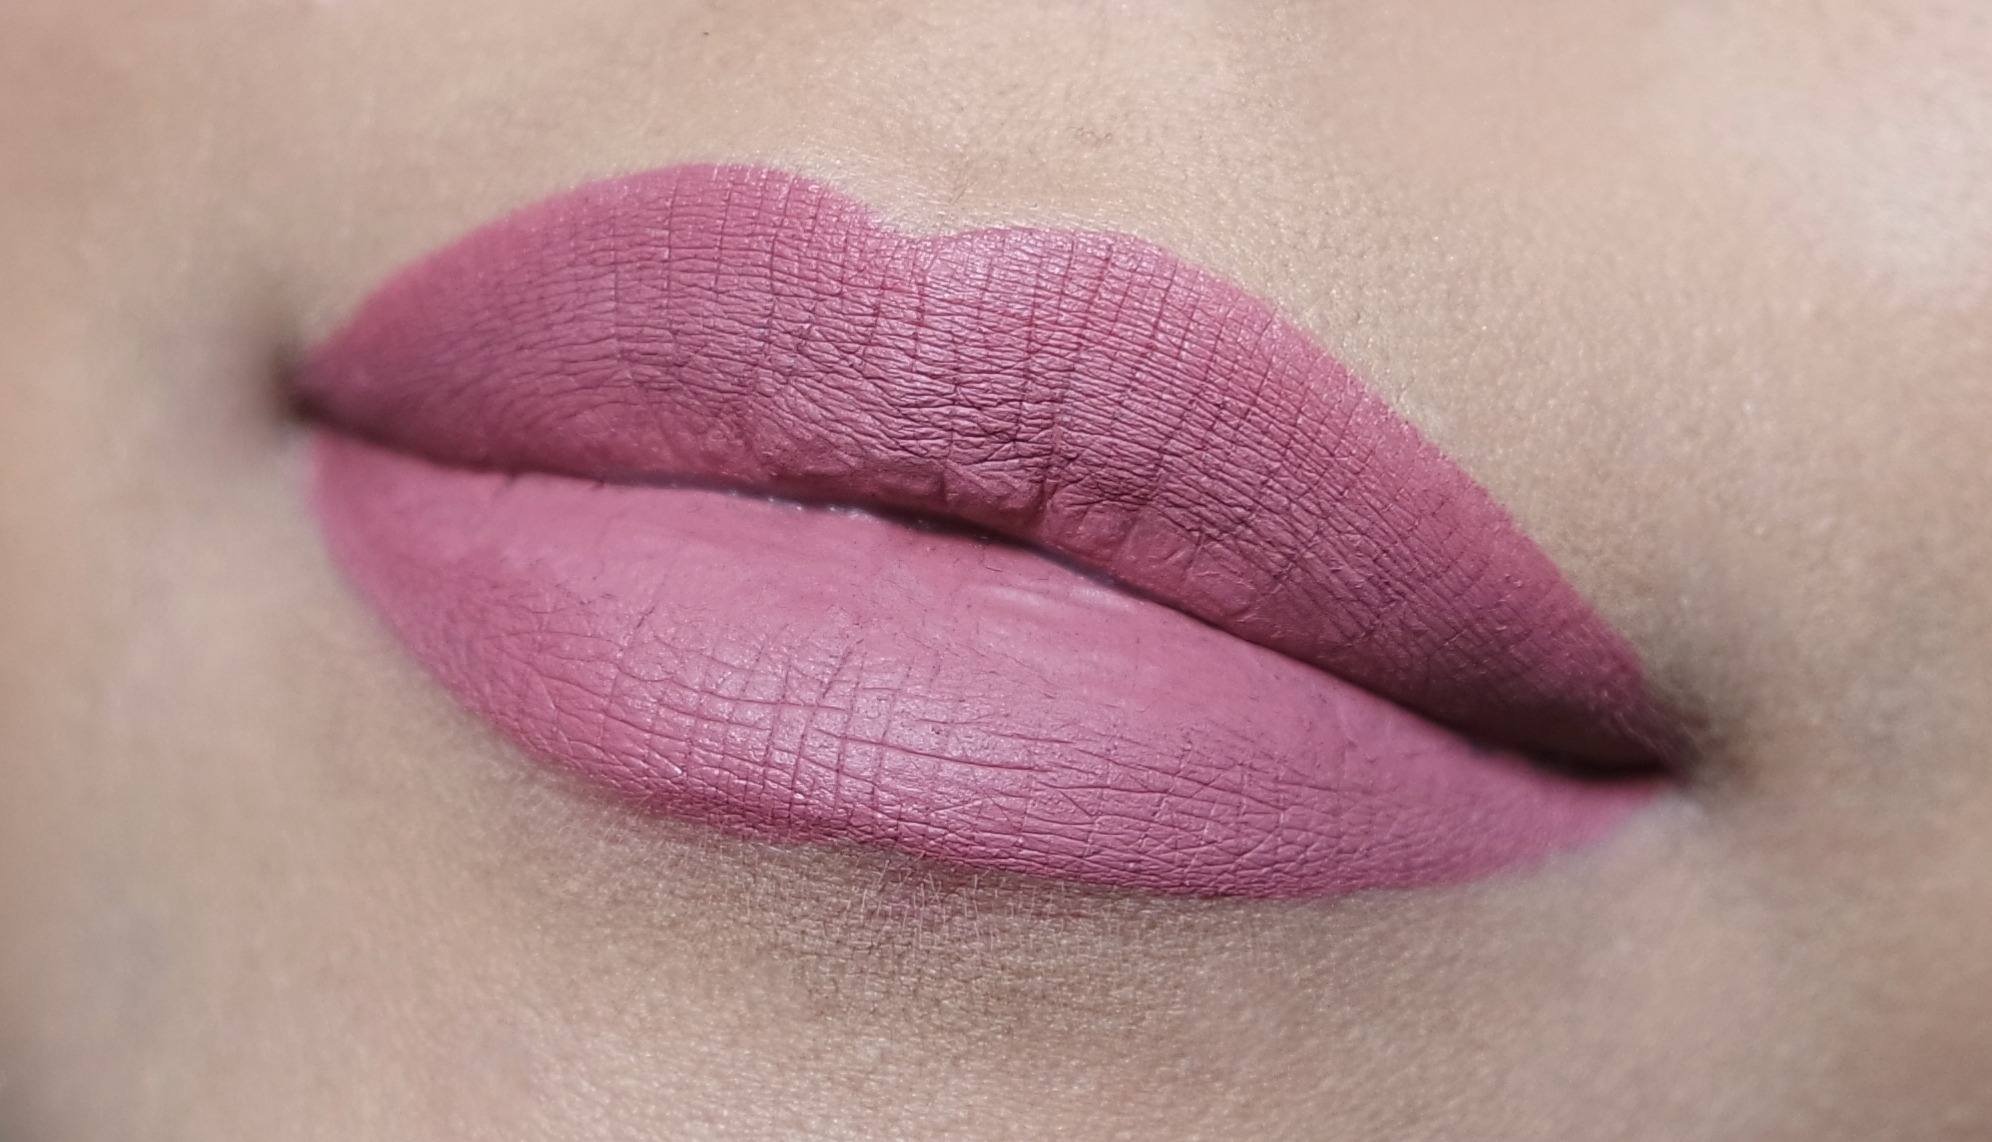 Anastasia Liquid Lipstick In Dusty Rose